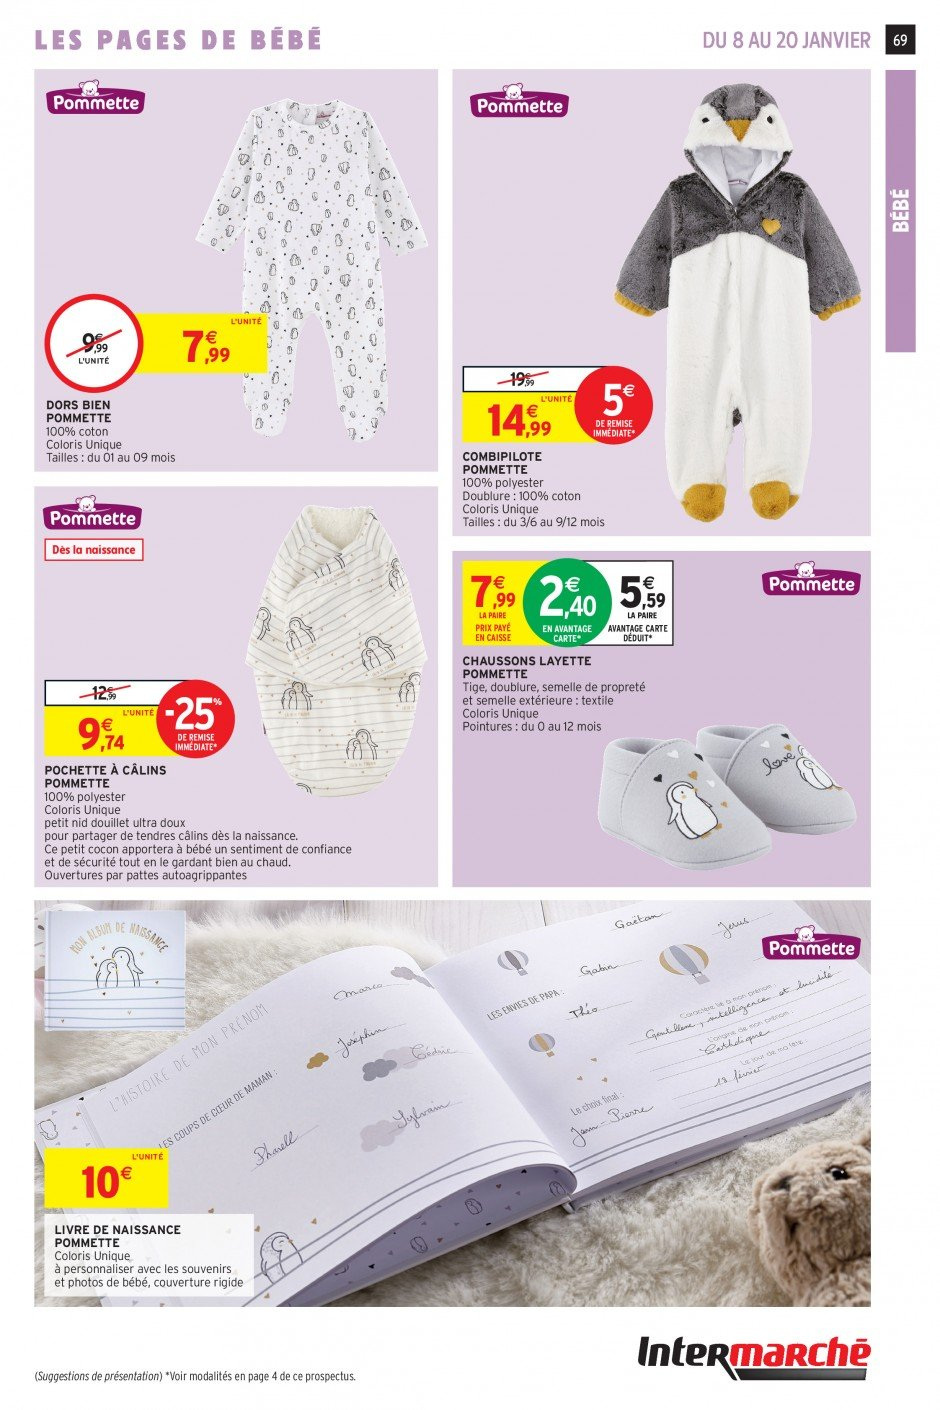 Catalogue Intermarché - 08.01.2019 - 20.01.2019. Page 66.